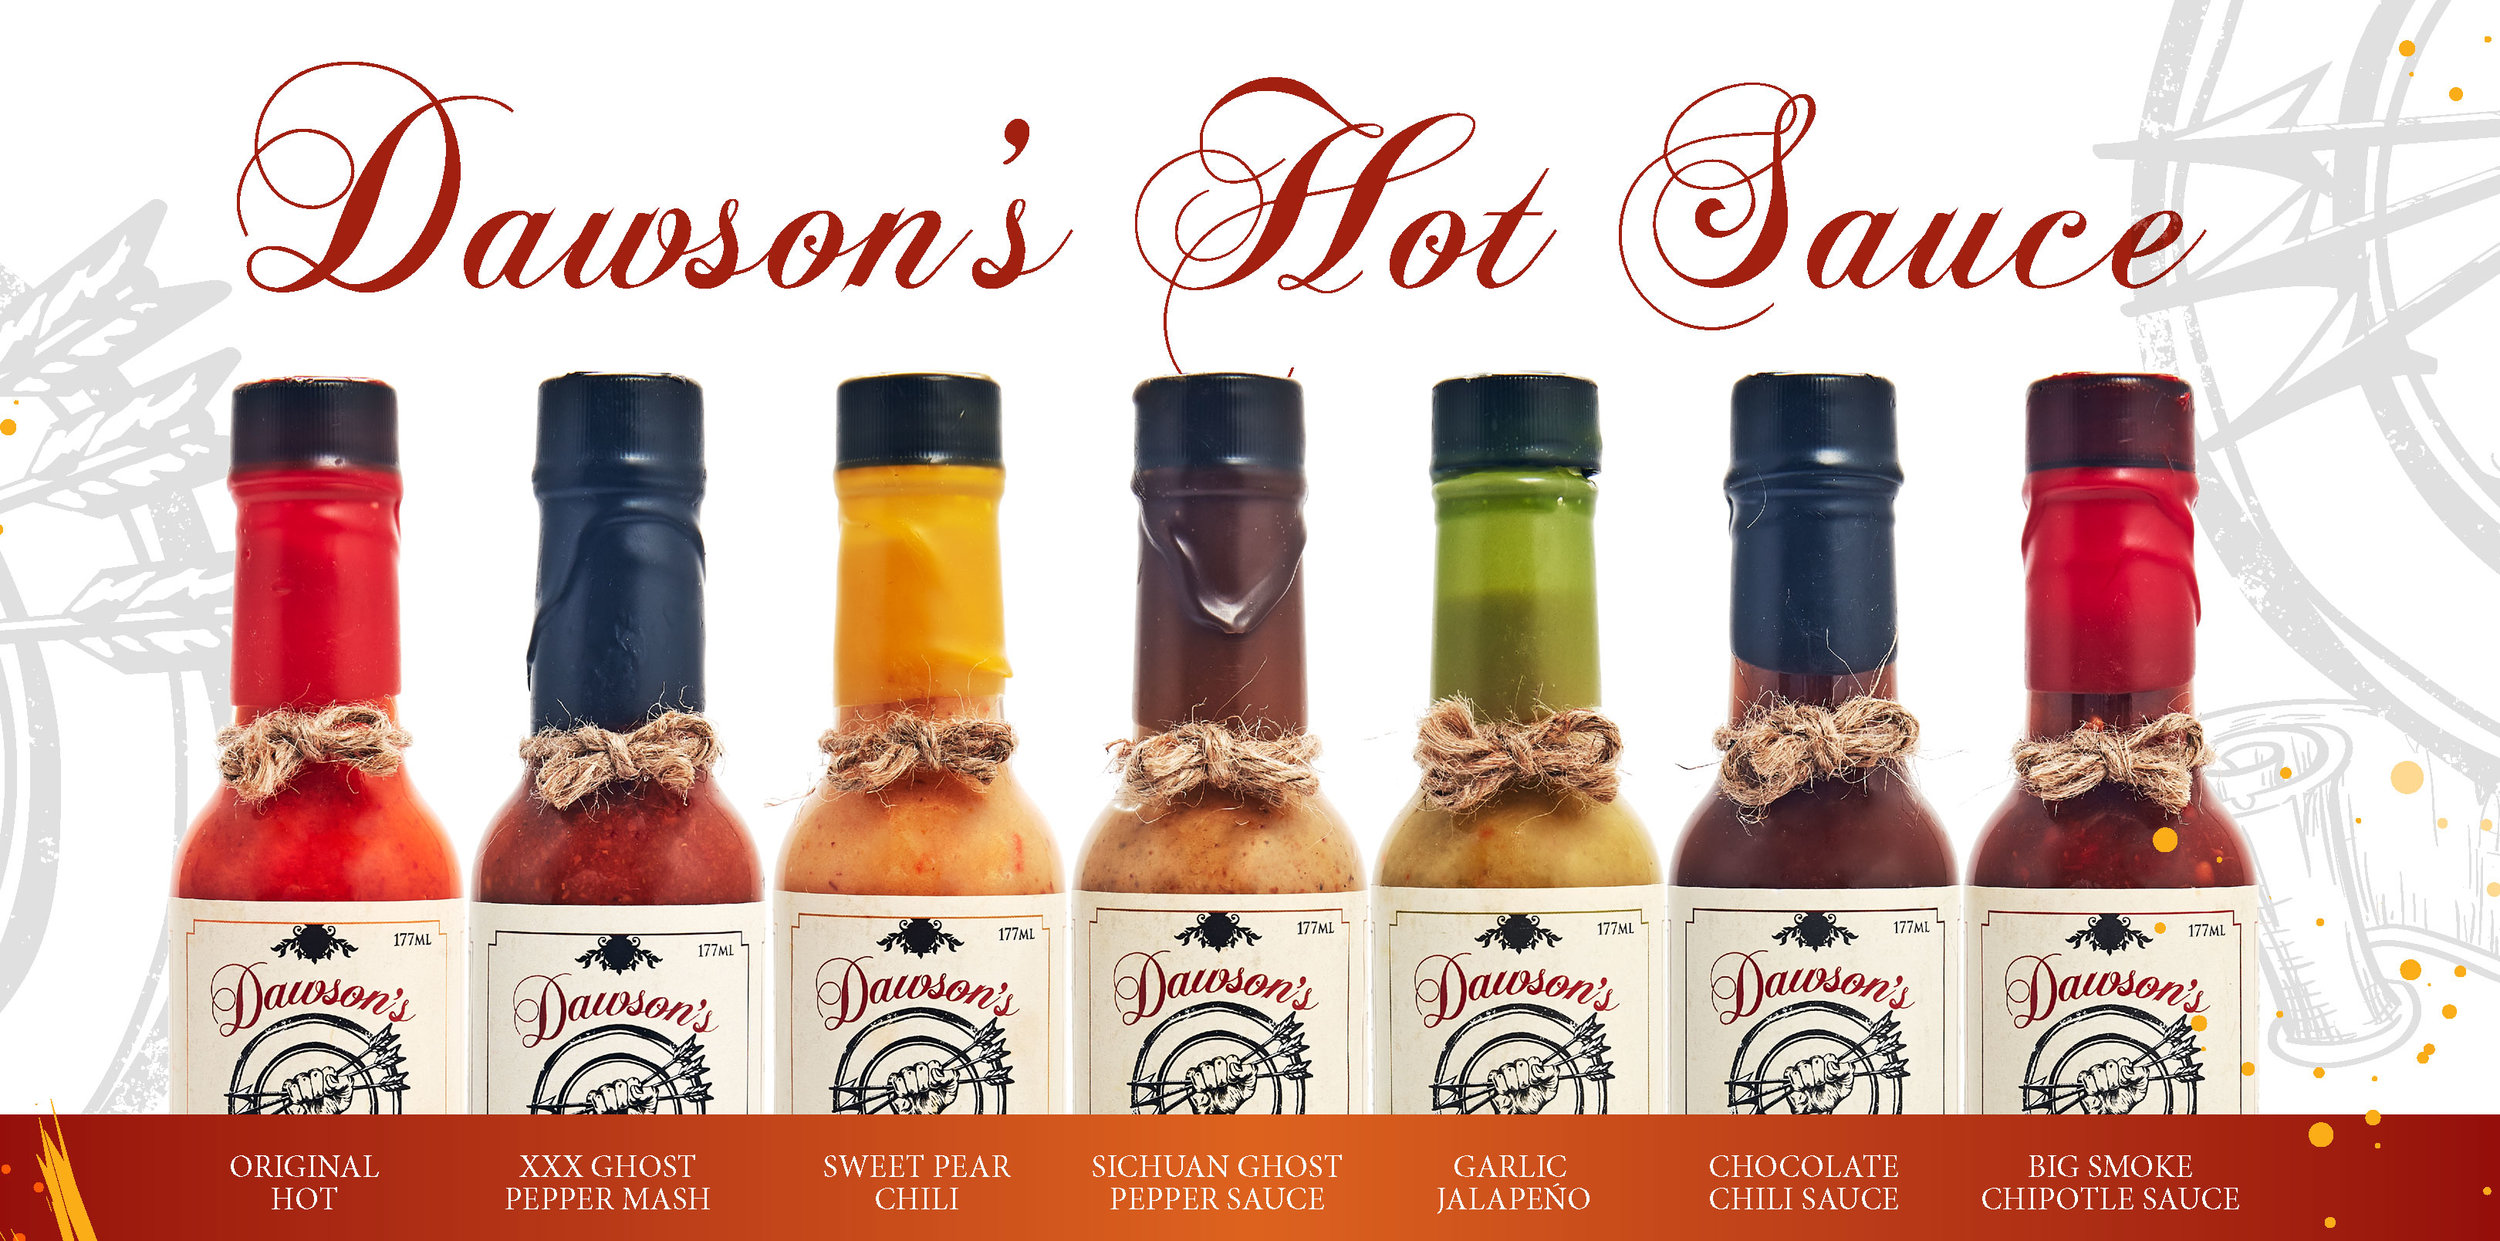 Dawson's Hot Sauce Products